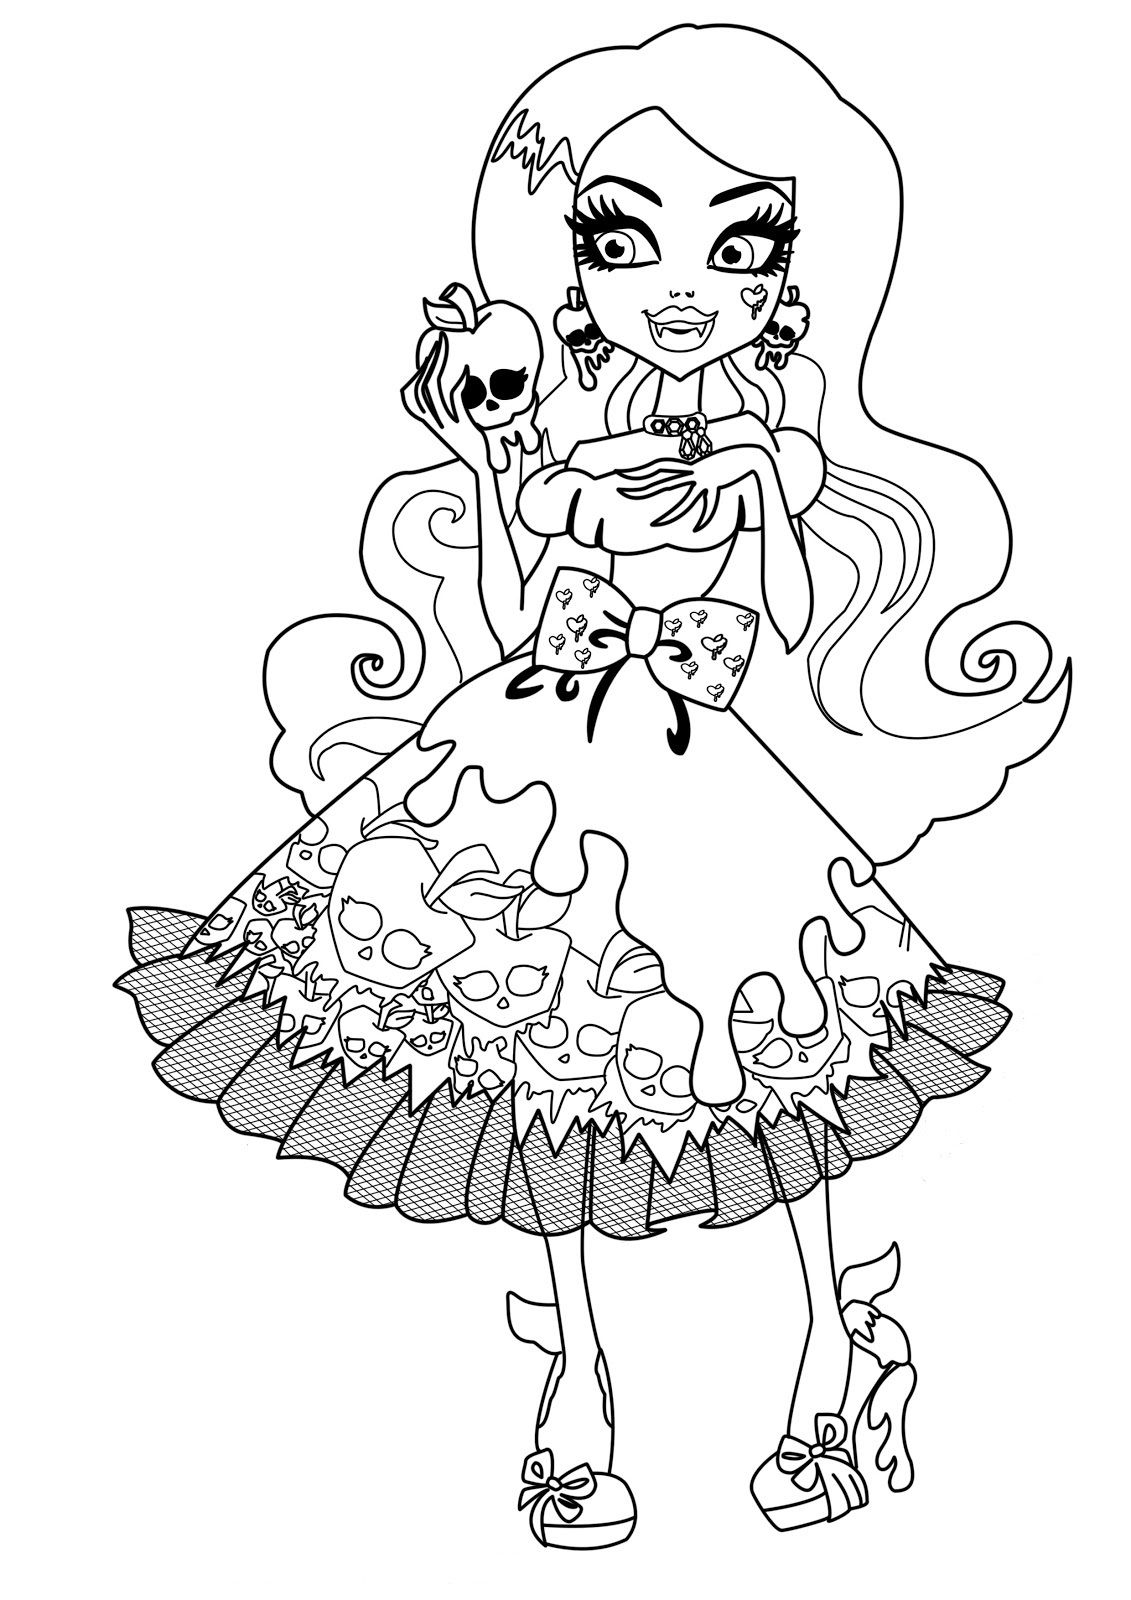 Draculaura Monster High Dolls Coloring Pages Monster High Coloring to Print Of Inspiring Monster High Coloring Pages Colouring Sheets Printables Gallery